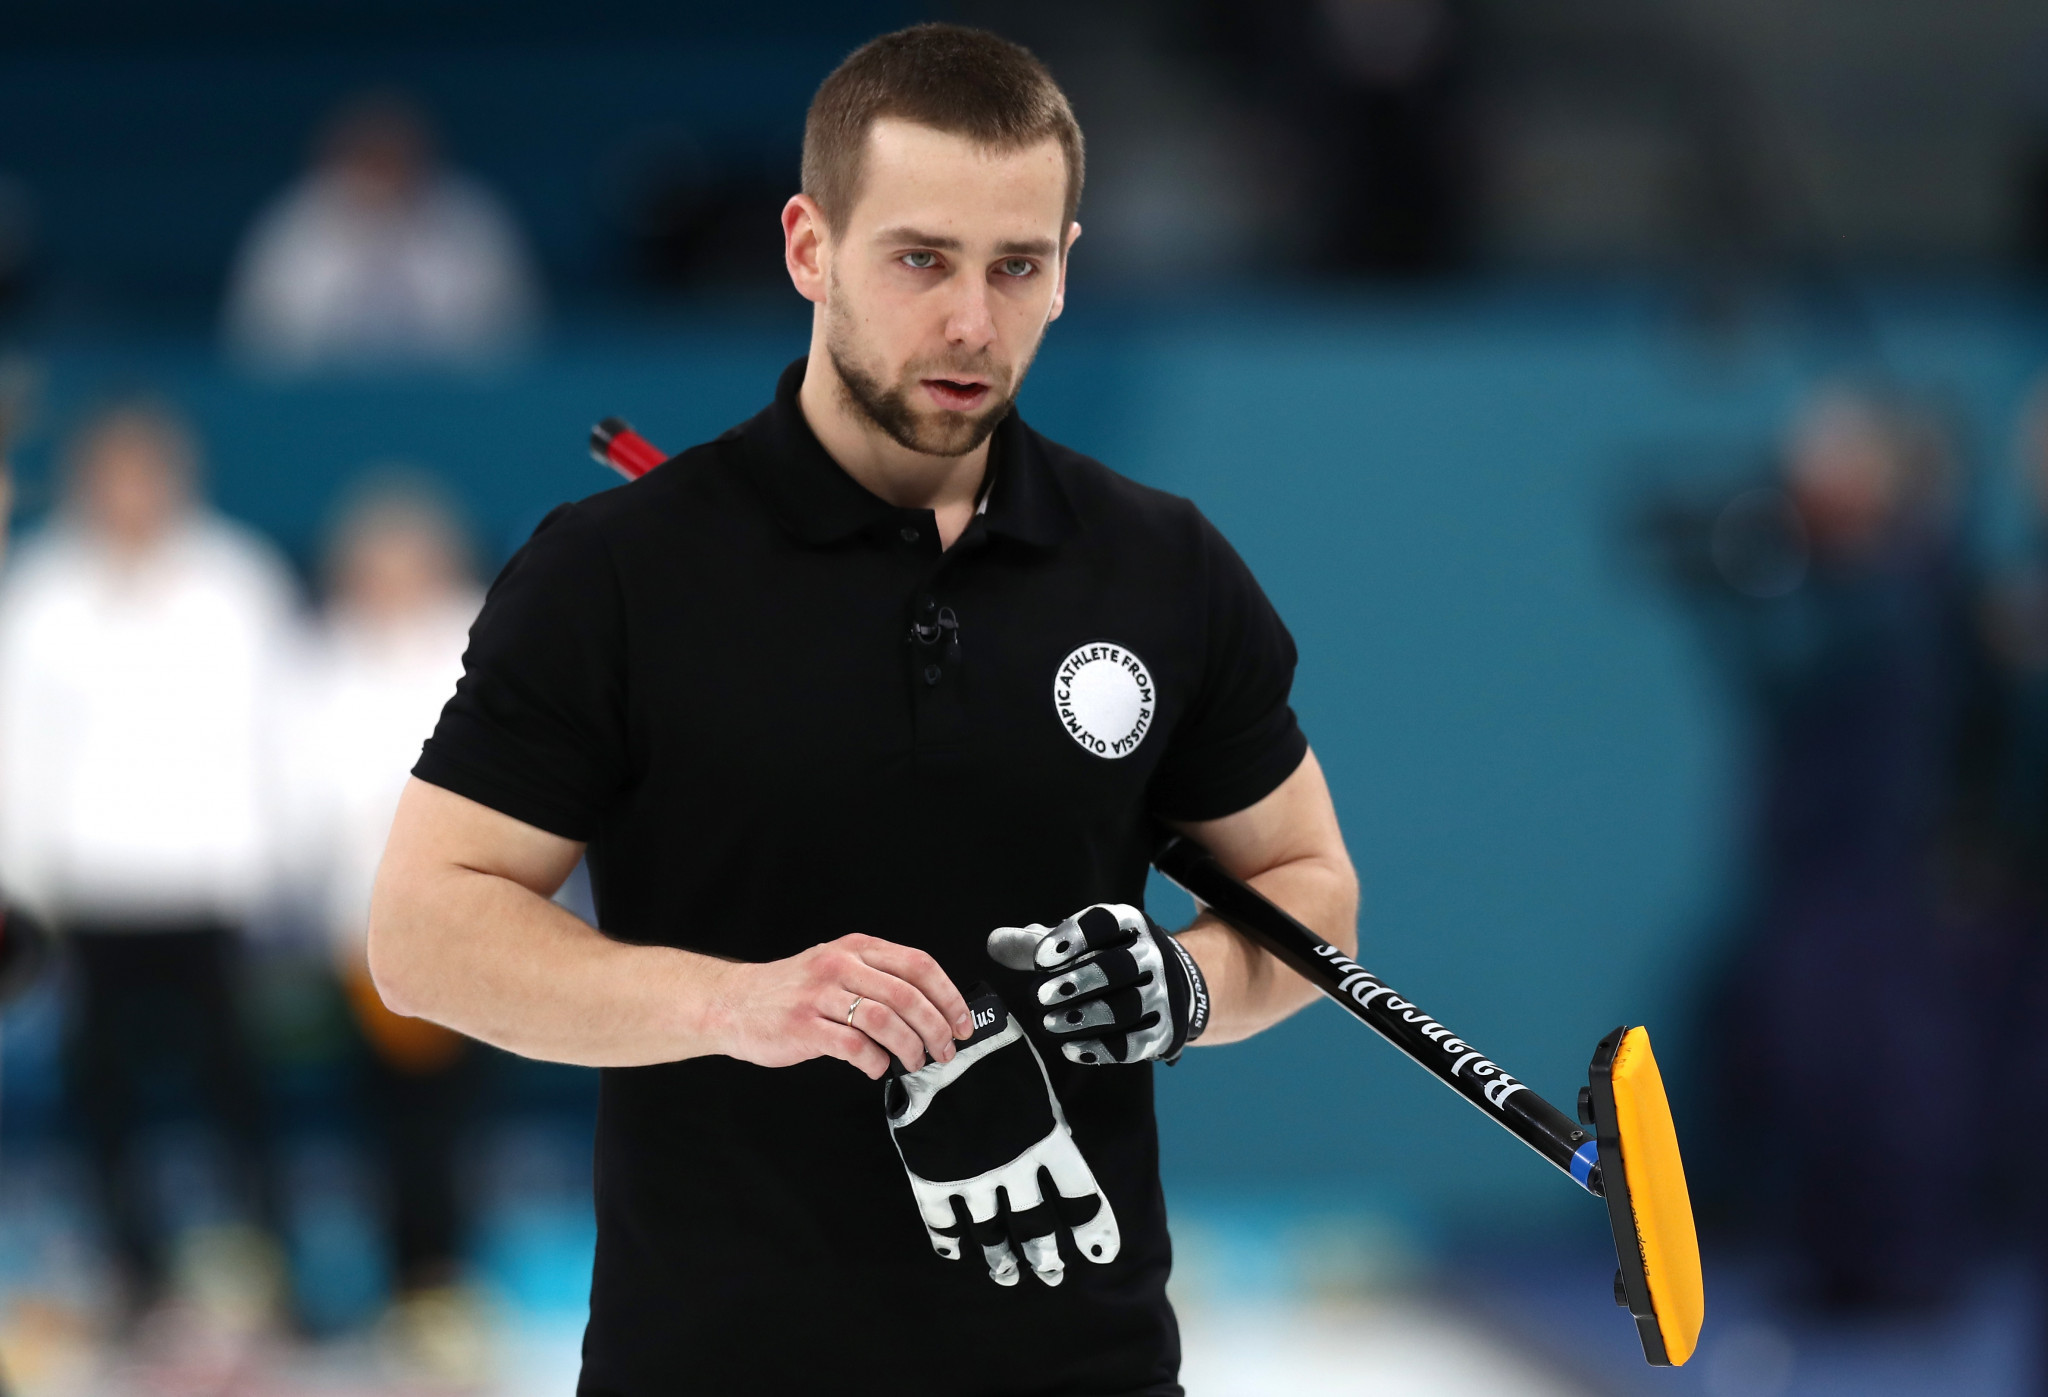 Russian Curling Federation President Dmitry Svishchev claimed the case, like Aleksandr Krushelnitckii's doping violation, was an attack on Russia before a major sports event ©Getty Images